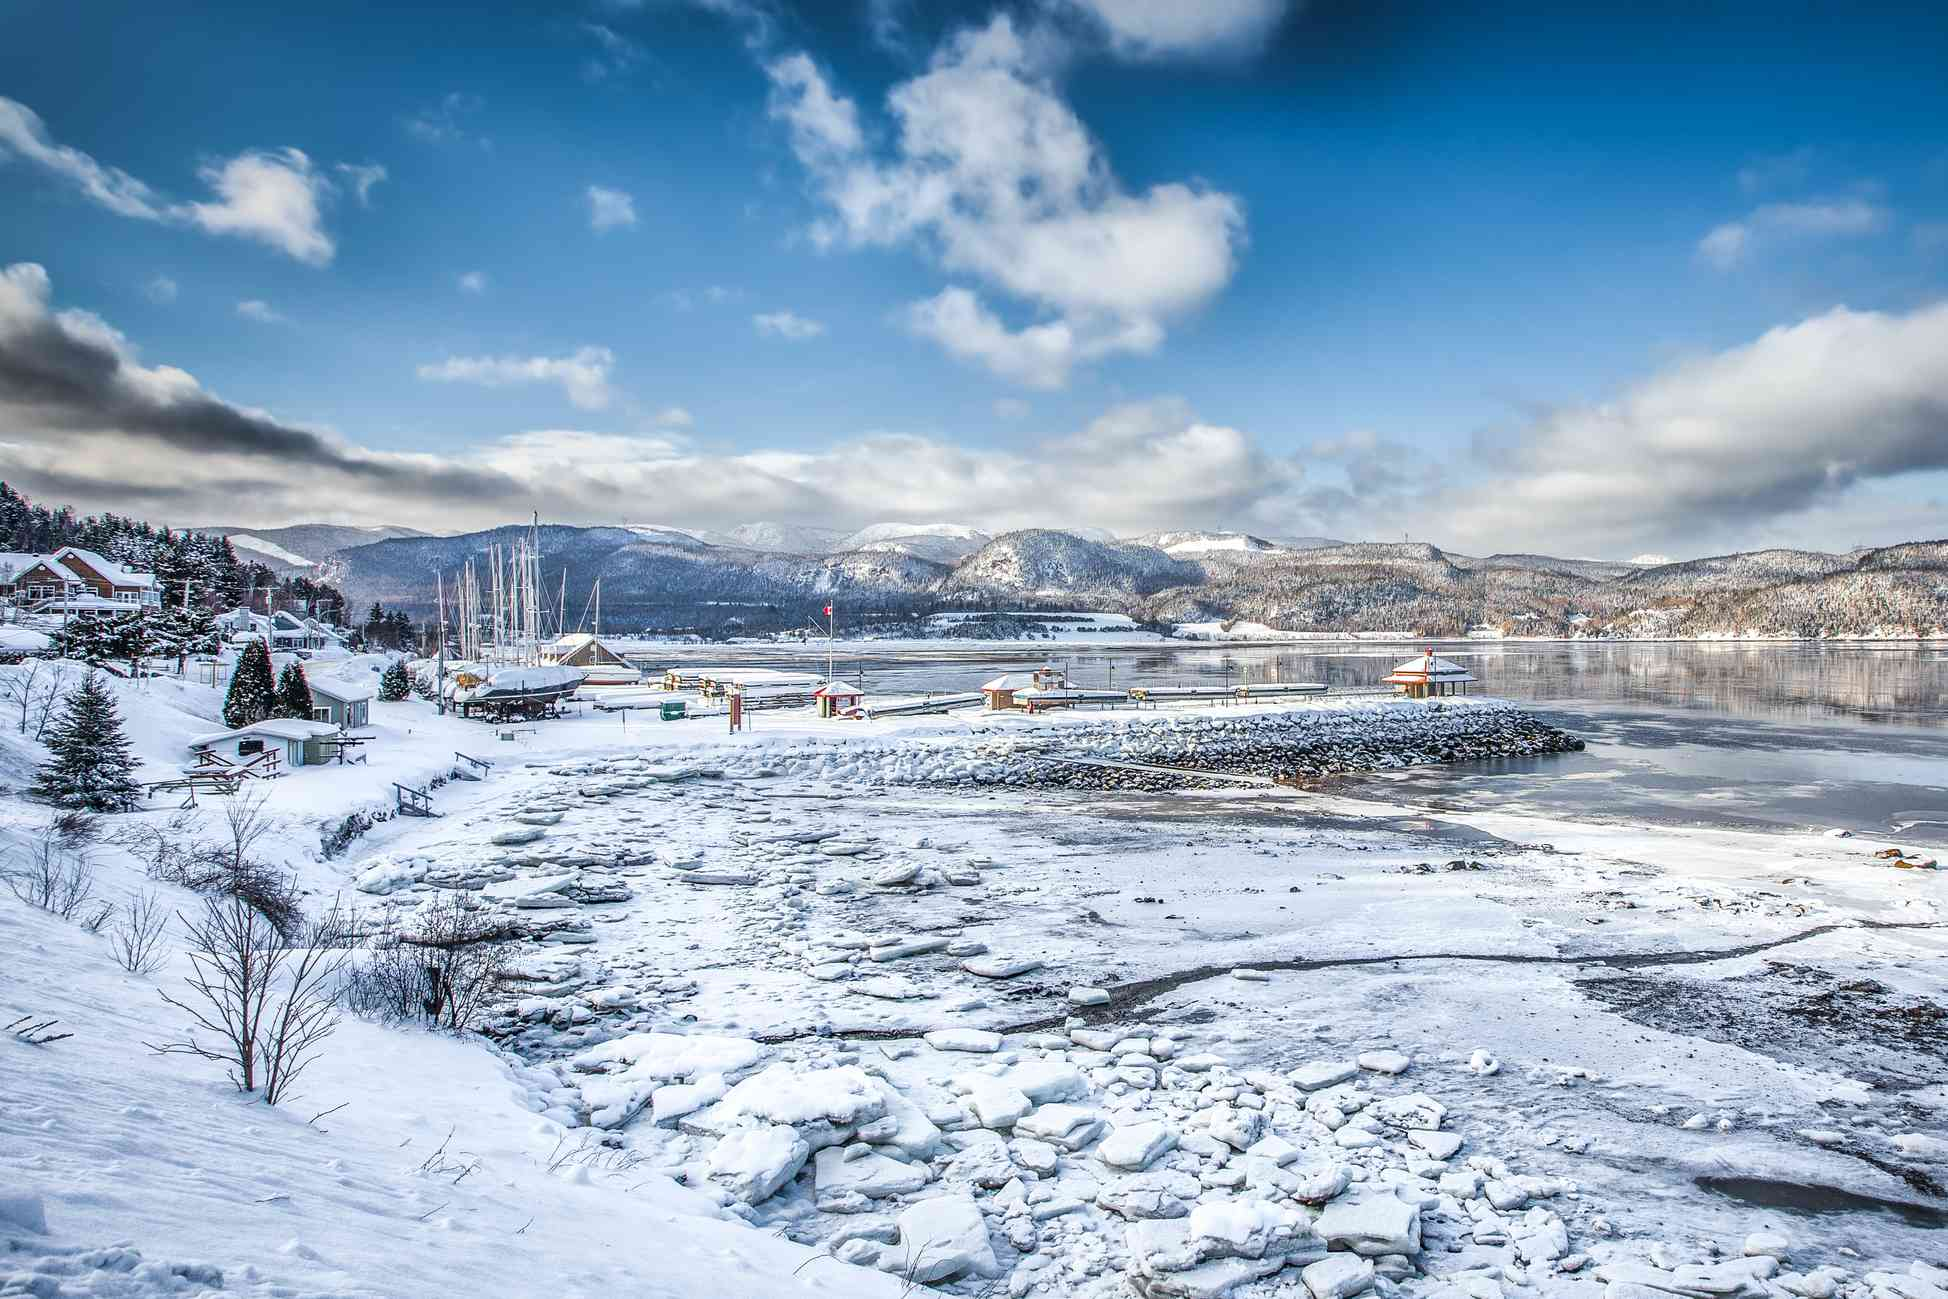 Snowy village and icy lake on the outskirts of Saguenay